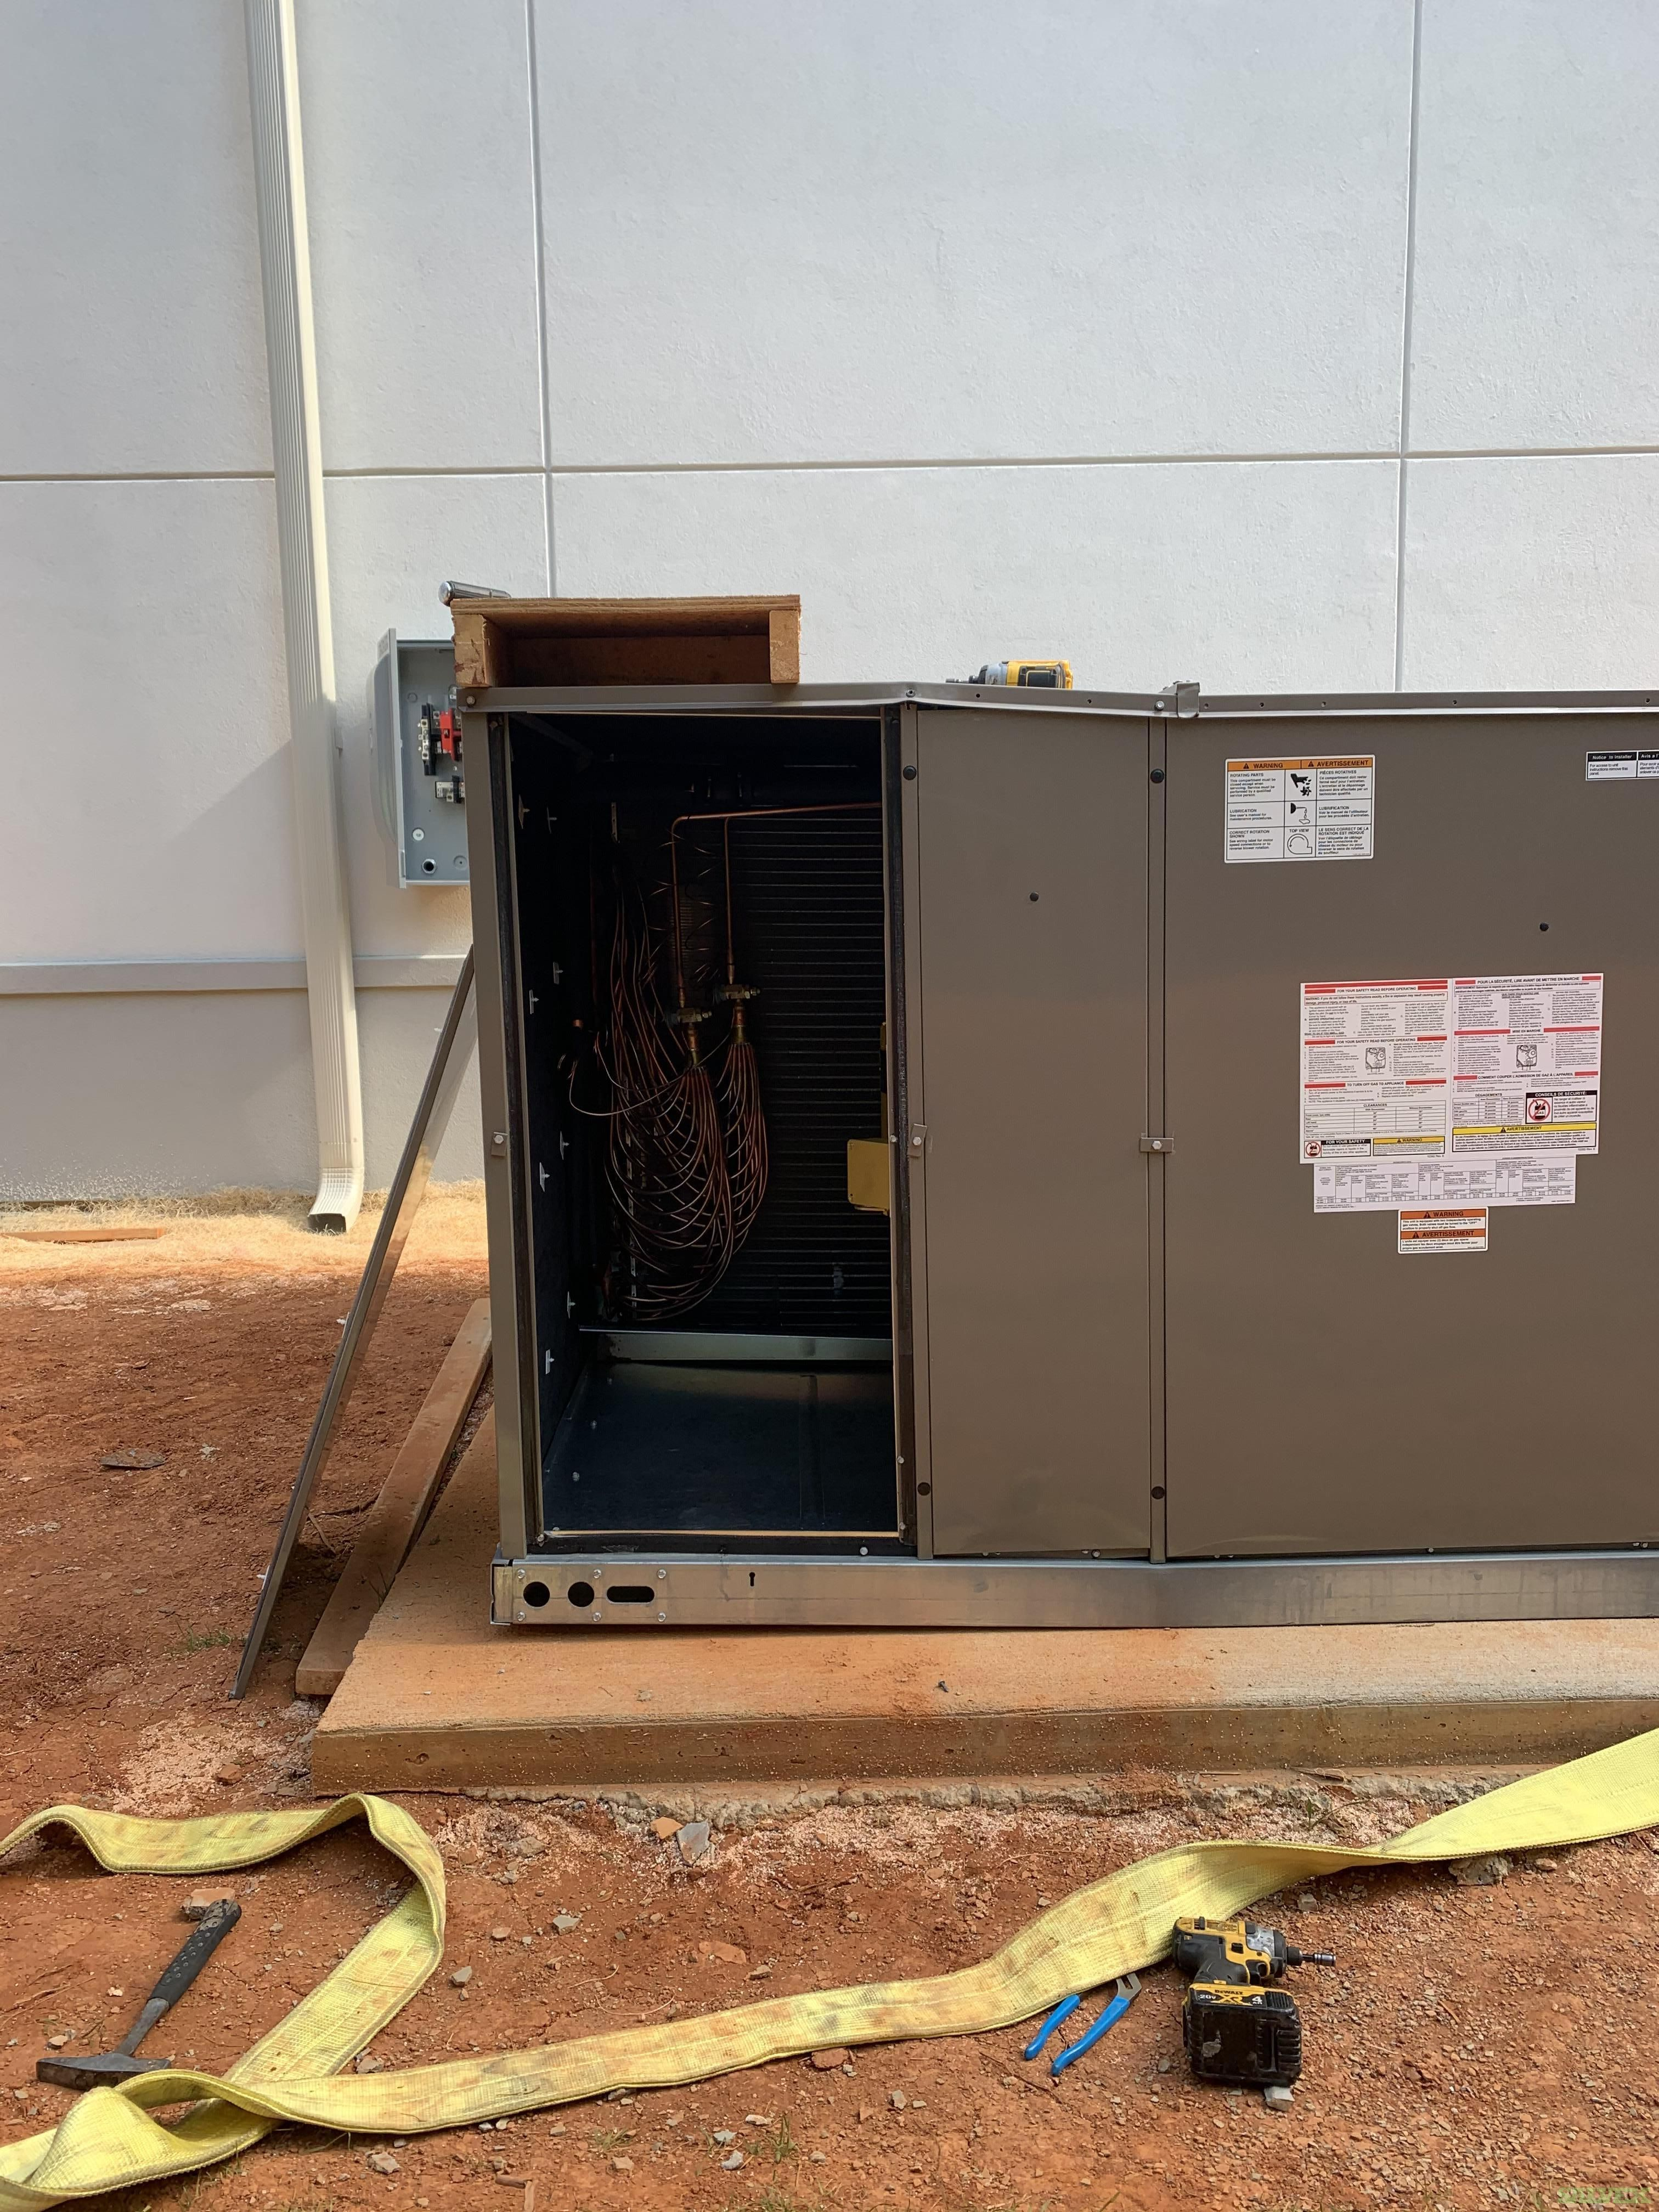 York ZF240N40R2C1AAA1A1 Heating and Air Conditioning Unit (1 Unit)